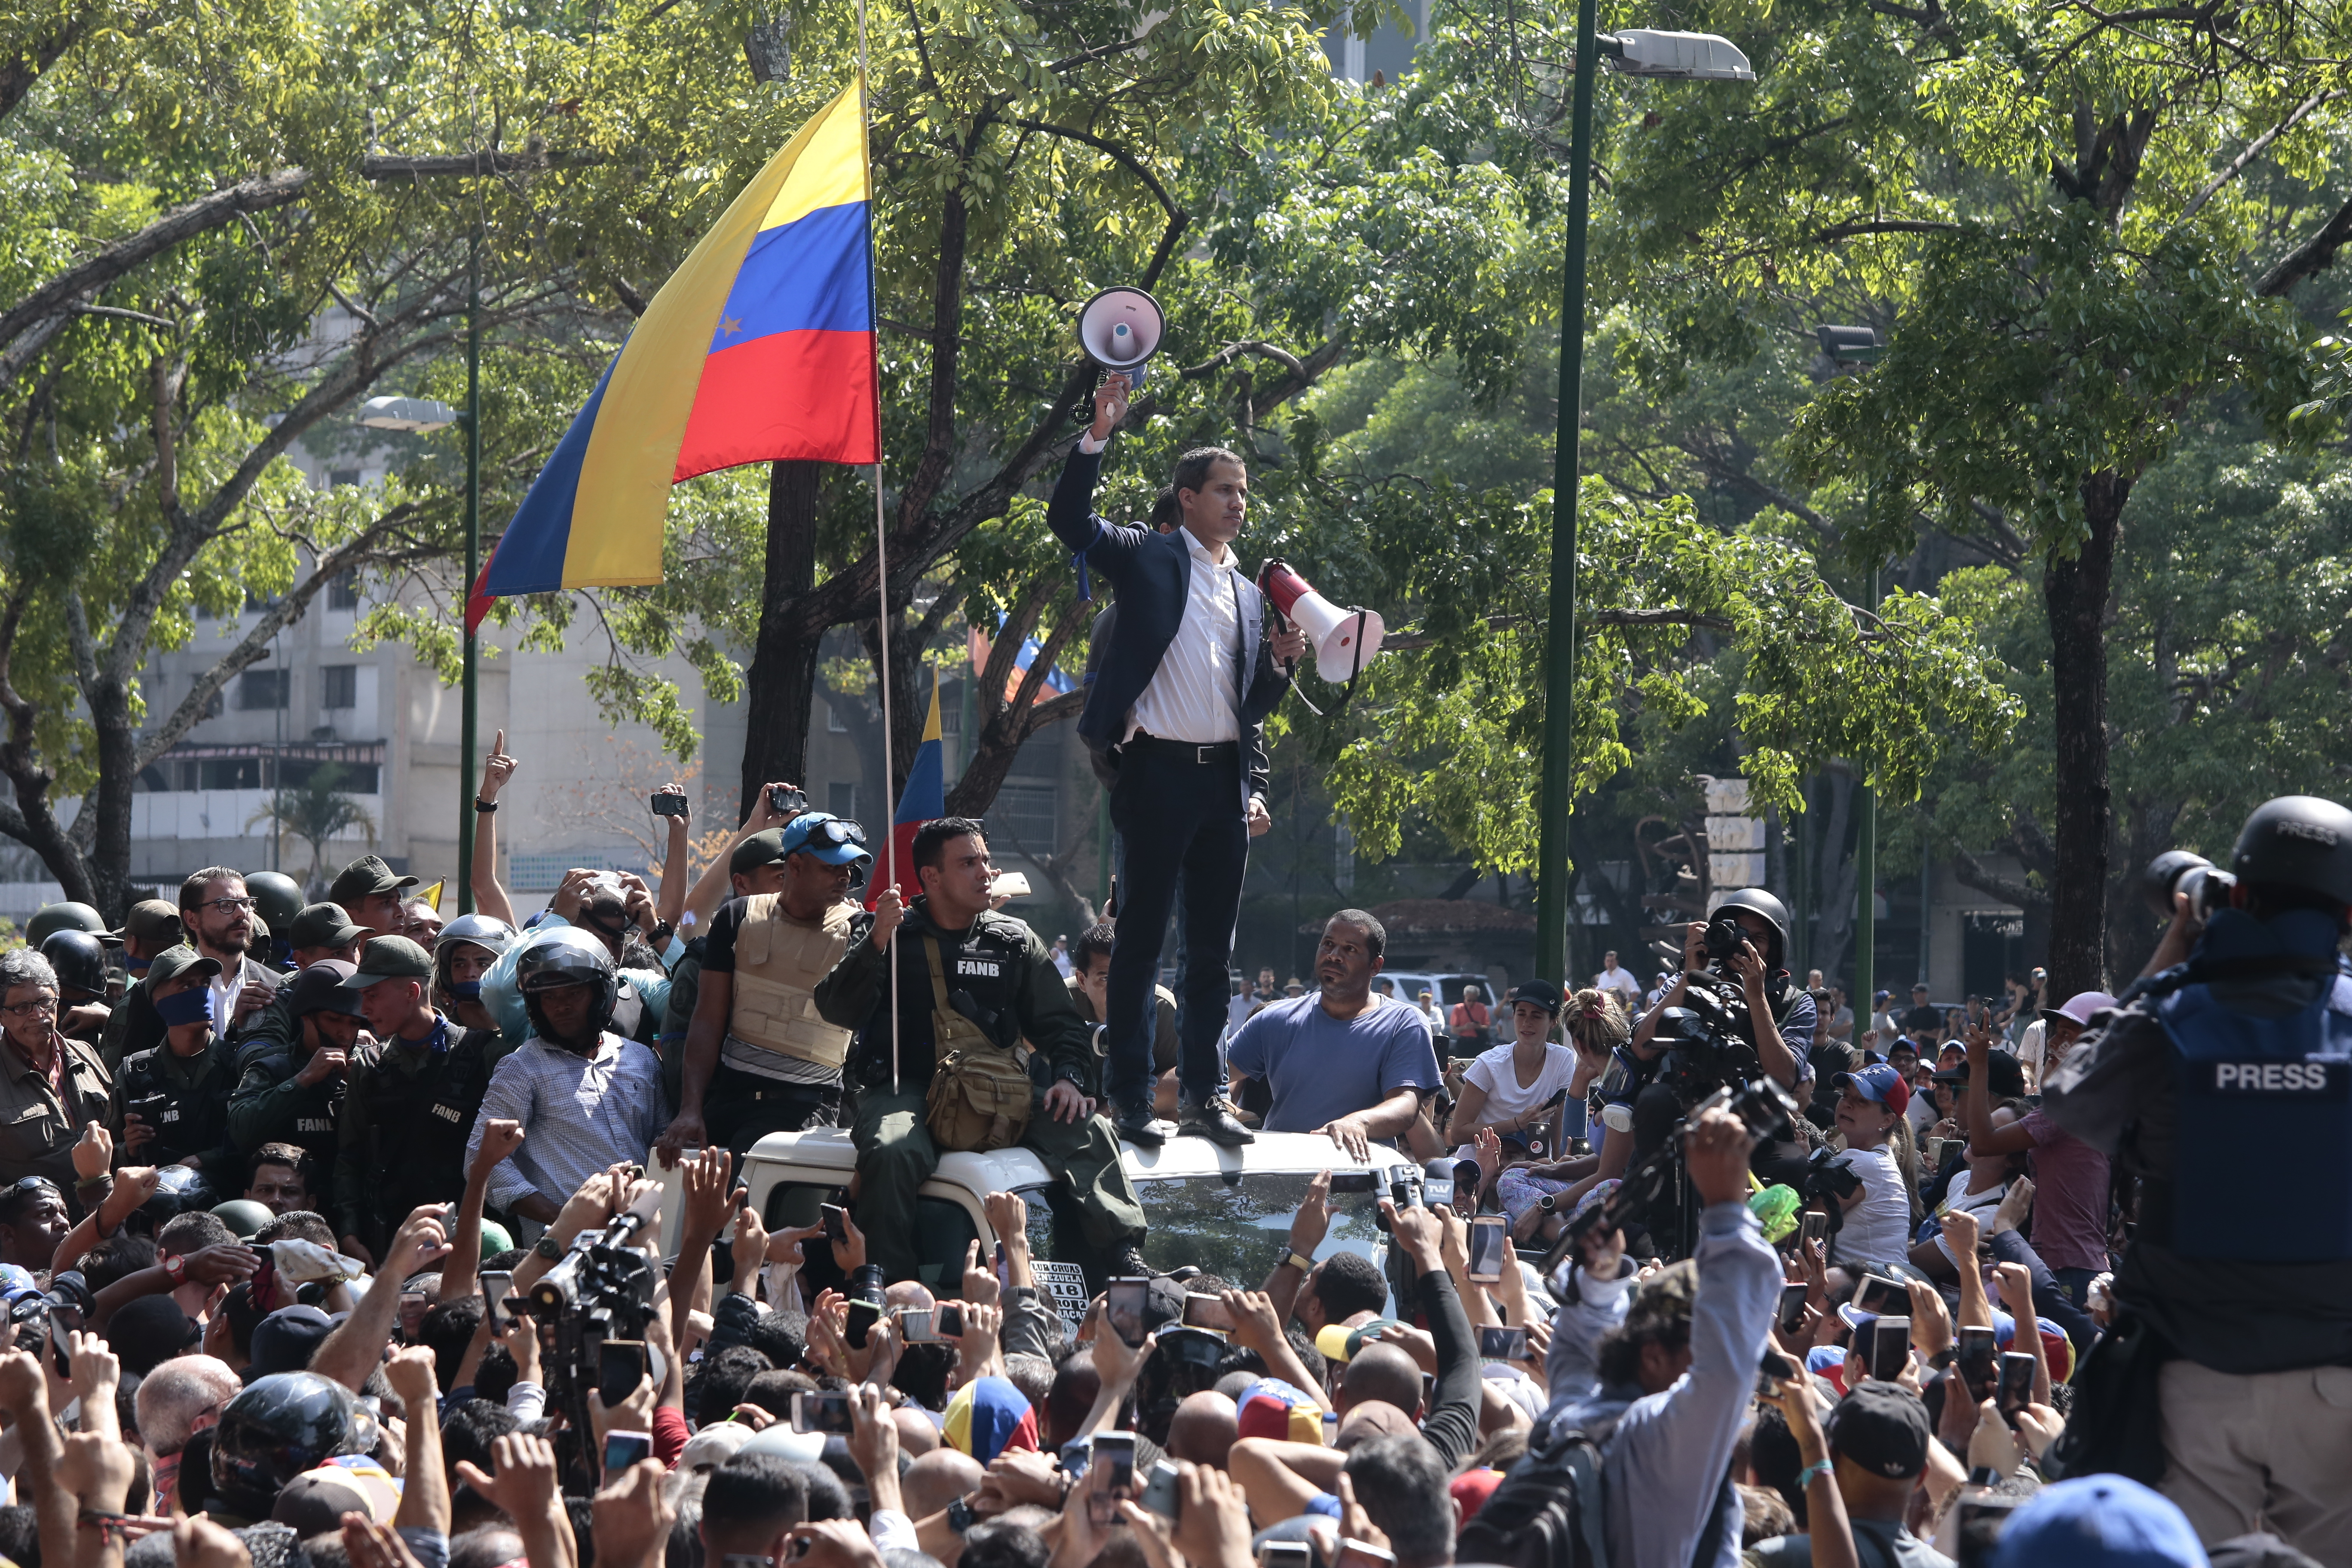 Juan Guaido, self-proclaimed interim president of Venezuela, stands with two megaphones in his hands surrounded by soldiers and civilians at Plaza Altamira on April 30, 2019 in Caracas, Venezuela.  As interim president of Venezuela, as legitimate supreme commander of the armed forces, I call on all soldiers to join us,  says the opposition leader on a highway.